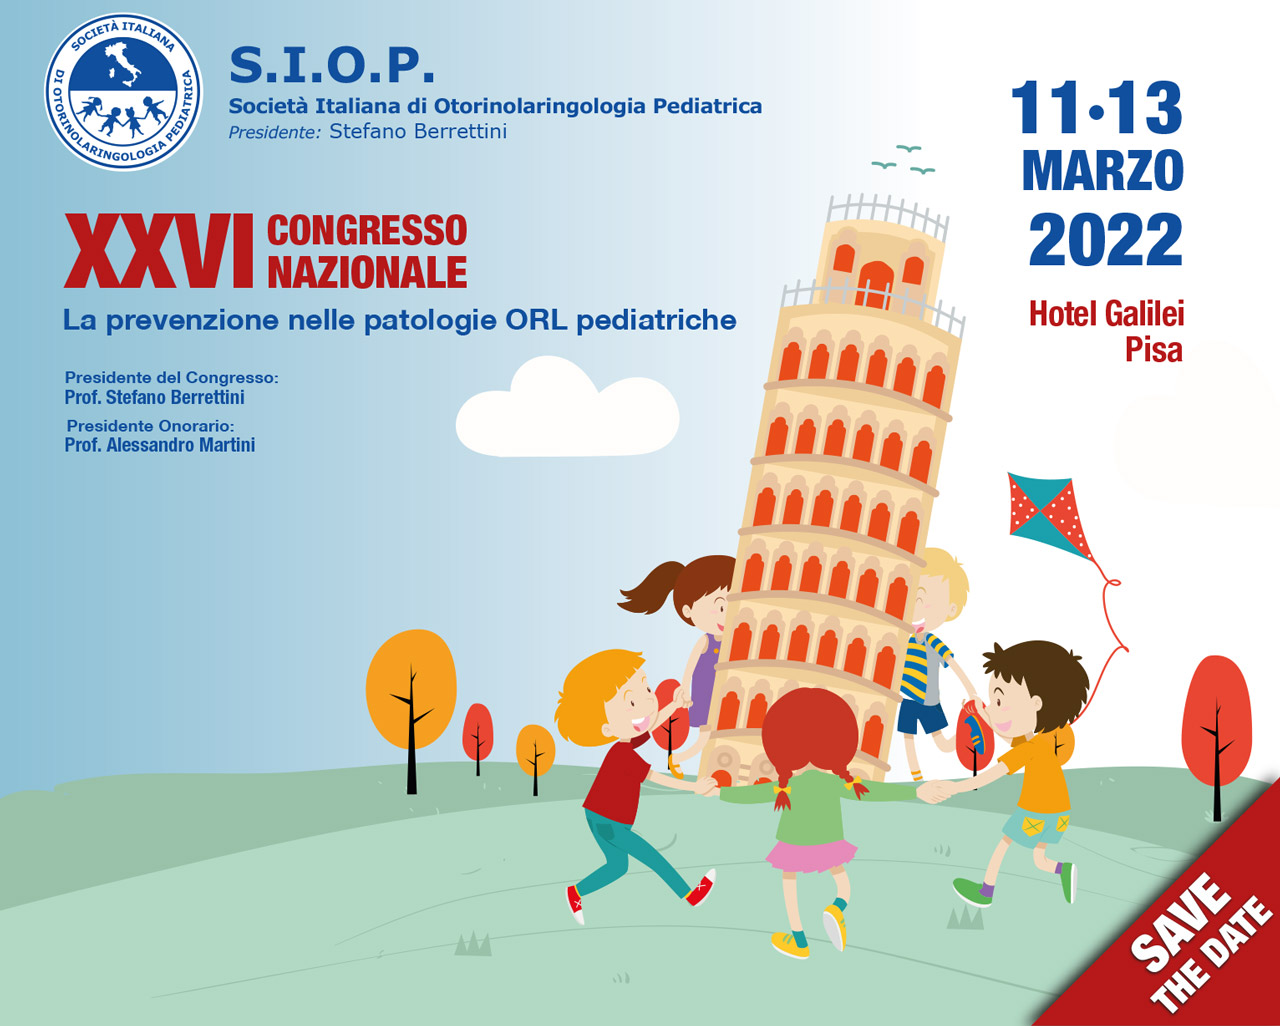 siop-11-13-marzo-2022-savethedate